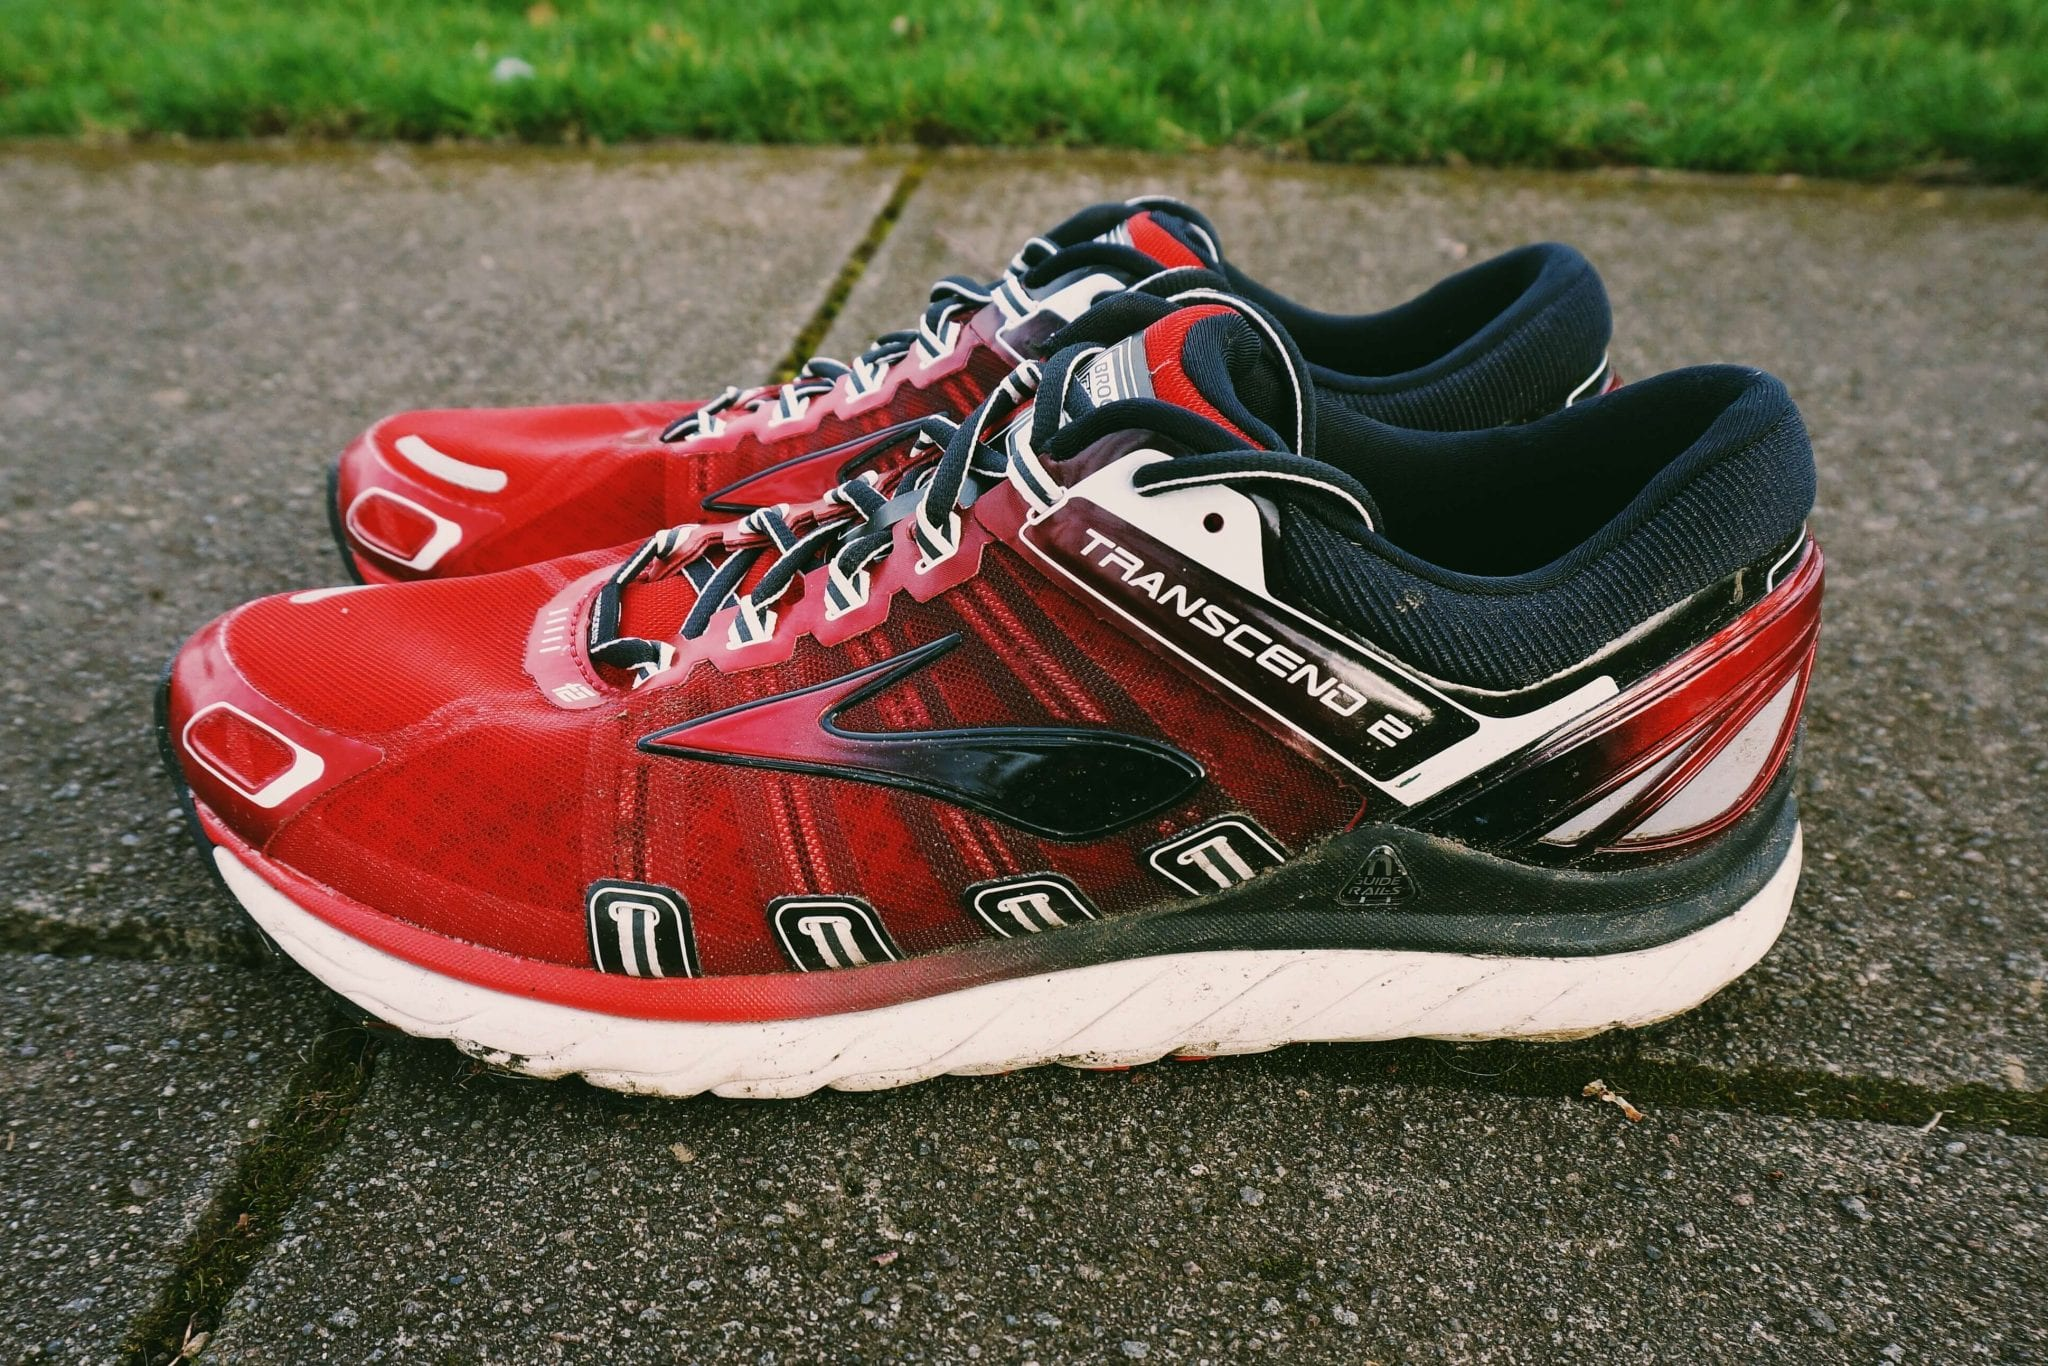 4bdec1e5e93 Review  Brooks Transcend 2 - Running Northwest